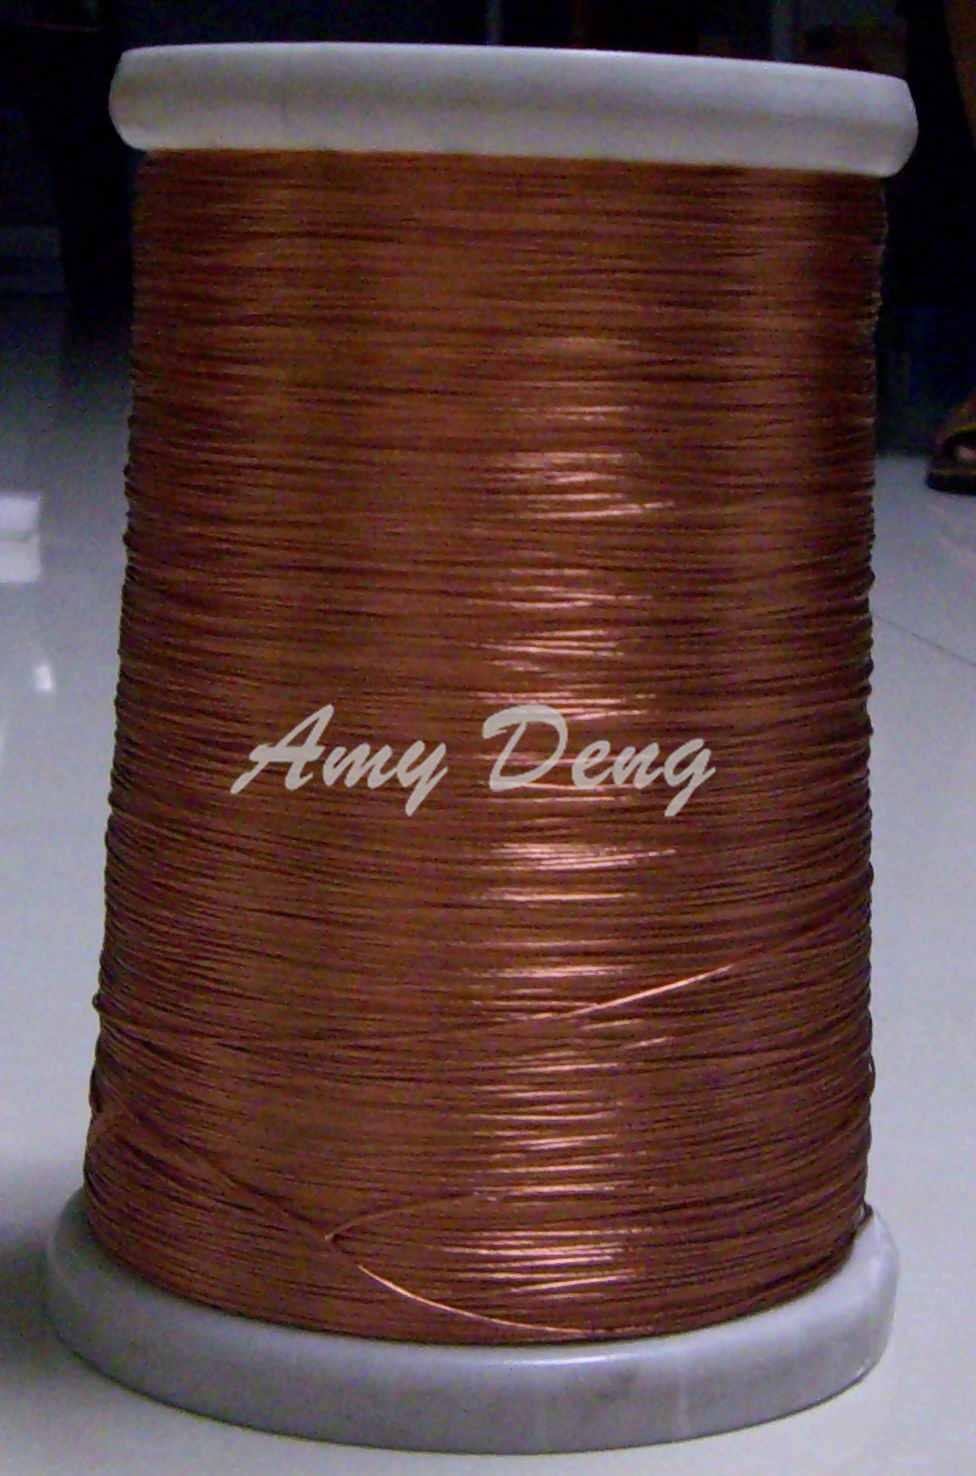 20 Meters/lot  0.1x250 Shares Of More Than One Strand Of Wire Copper Wire Copper Wire Copper Wire In The Sale Of